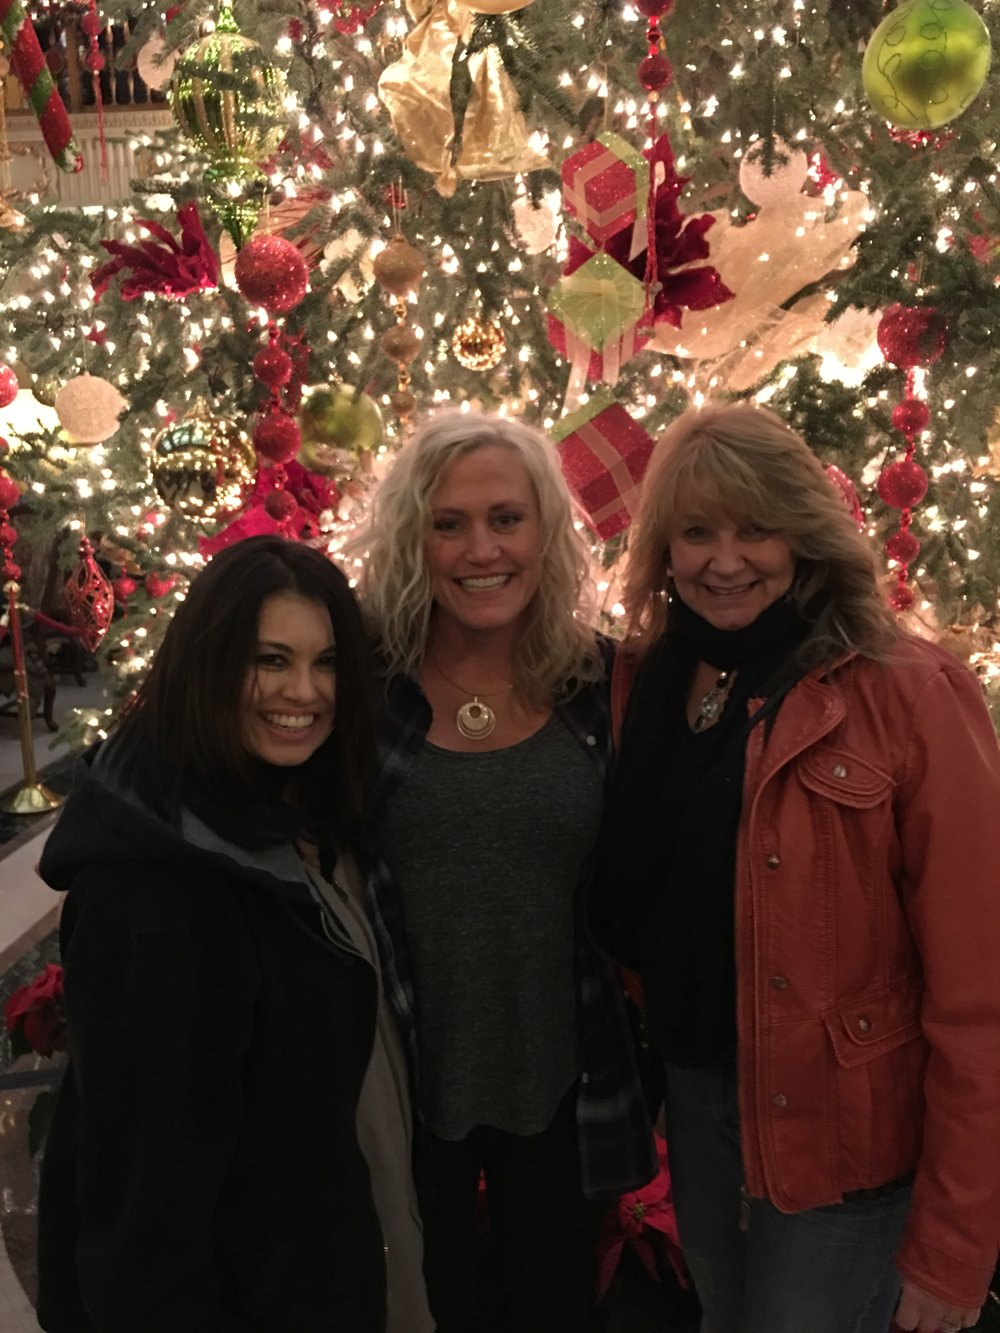 My friends Patrizia and Rhonda and me, in Spokane for a concert.